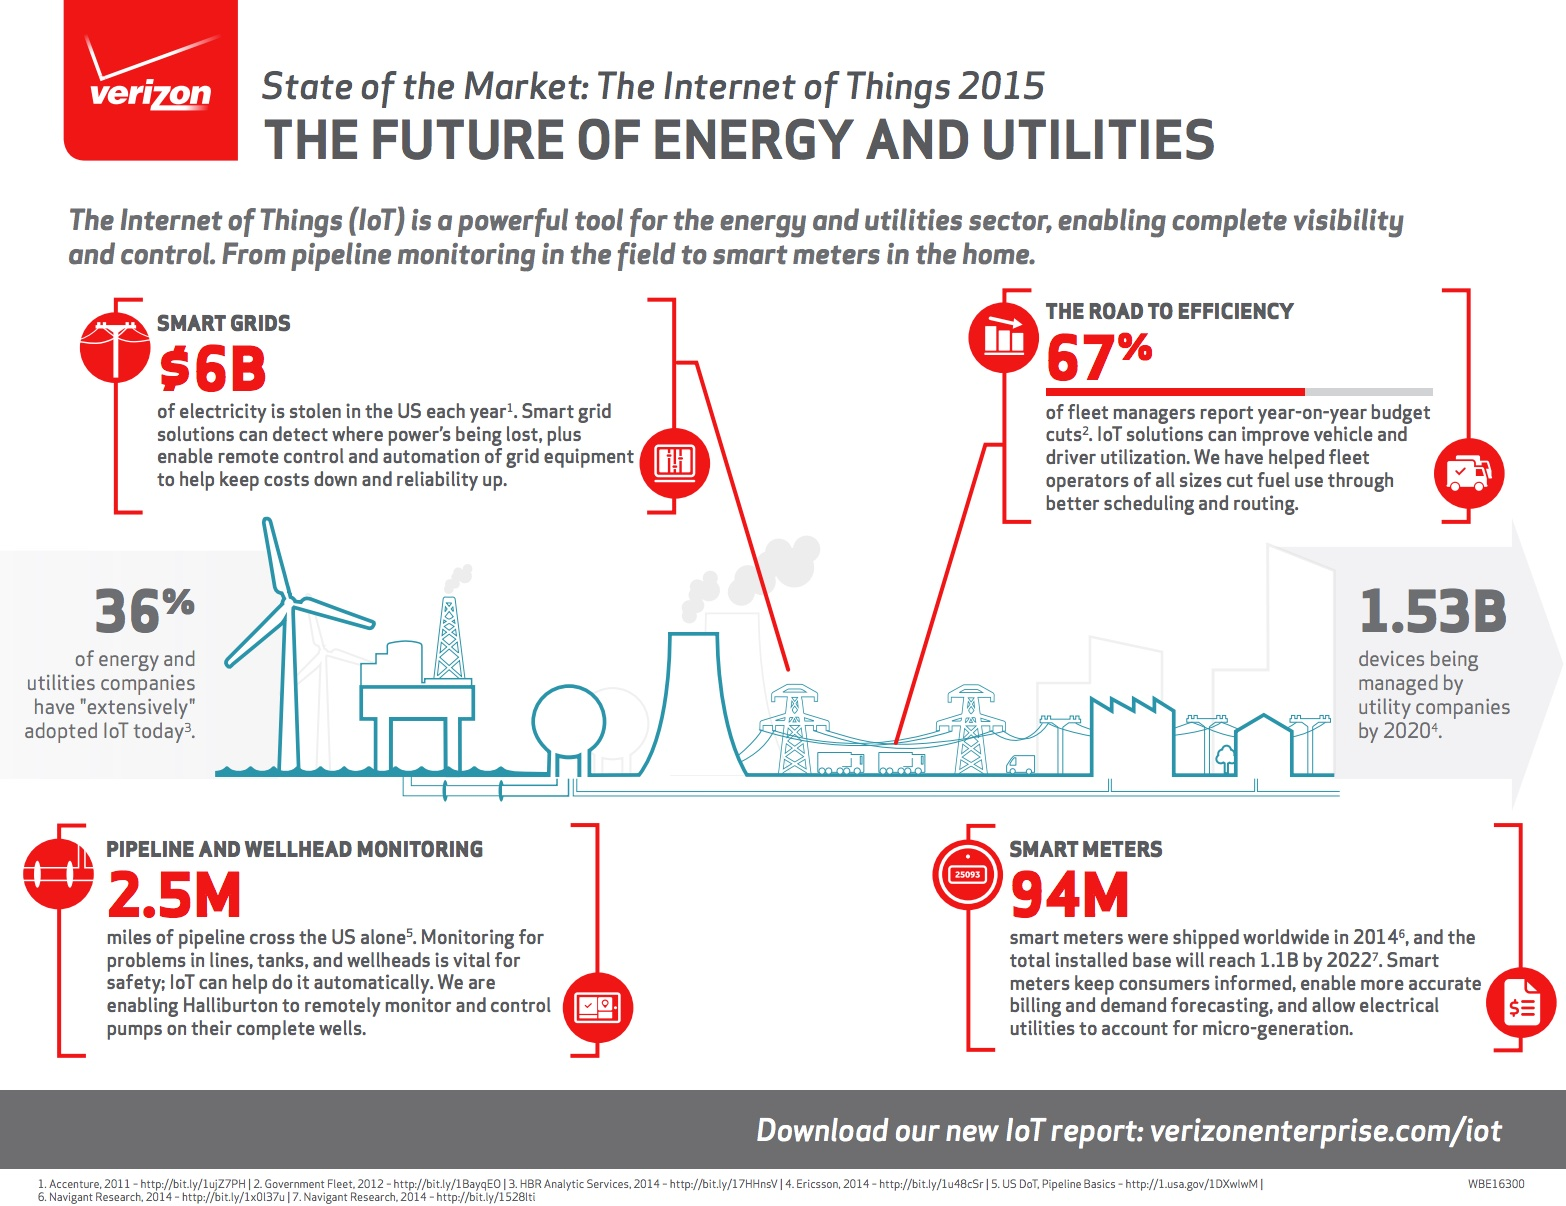 www_verizonenterprise_com_resources_infographic_ig_the-future-of-energy_en_xg_pdf